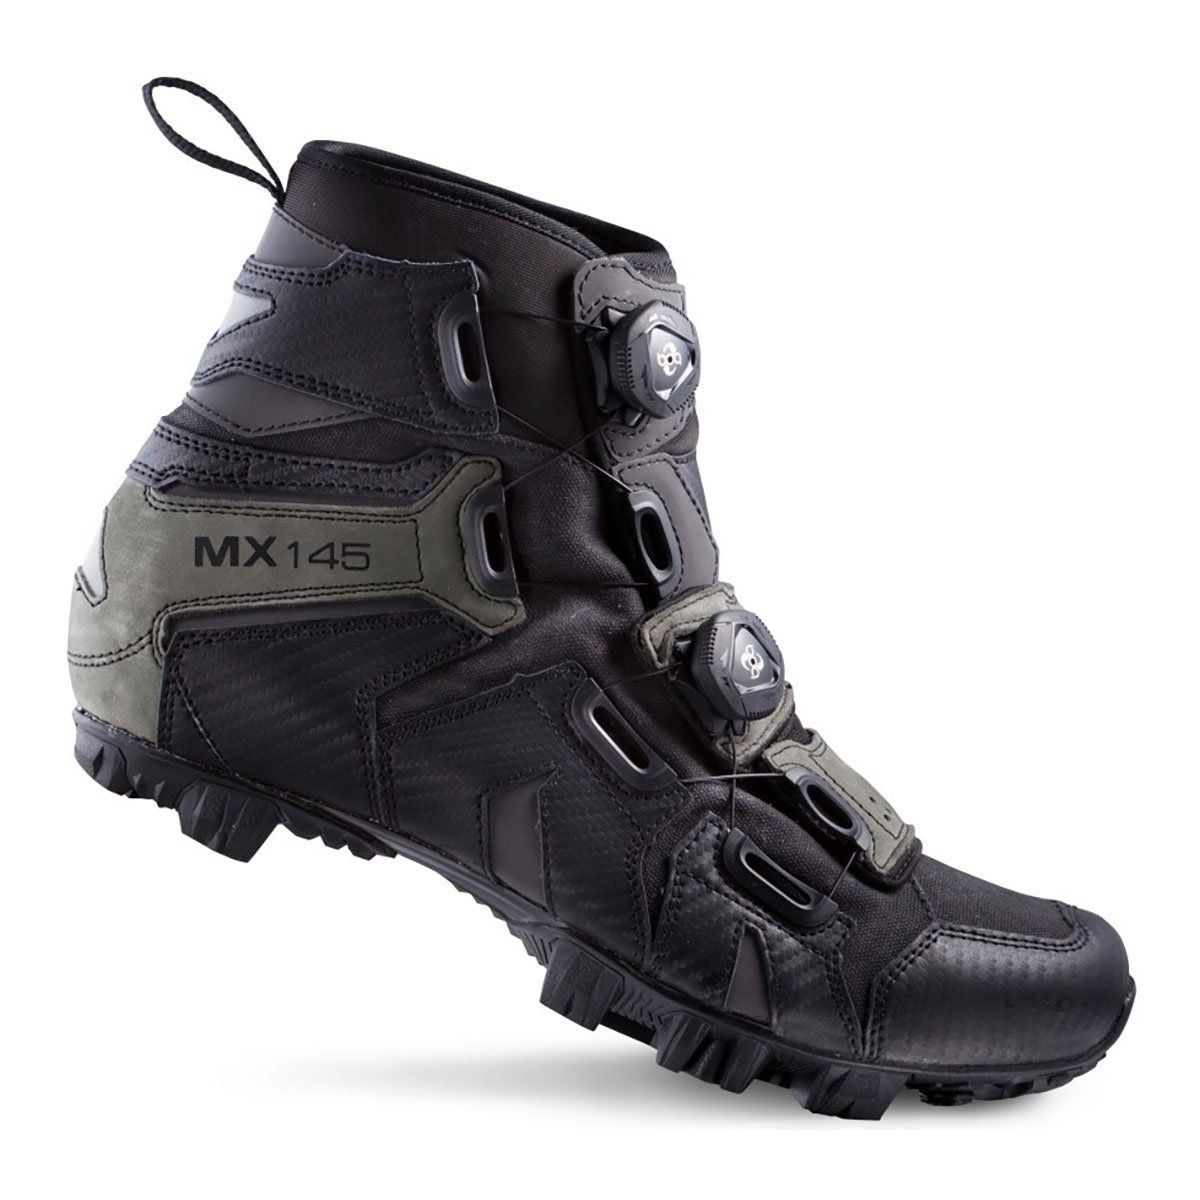 Lake Mx145 Men S Shoes With Images Boots Winter Boots Shoe Reviews